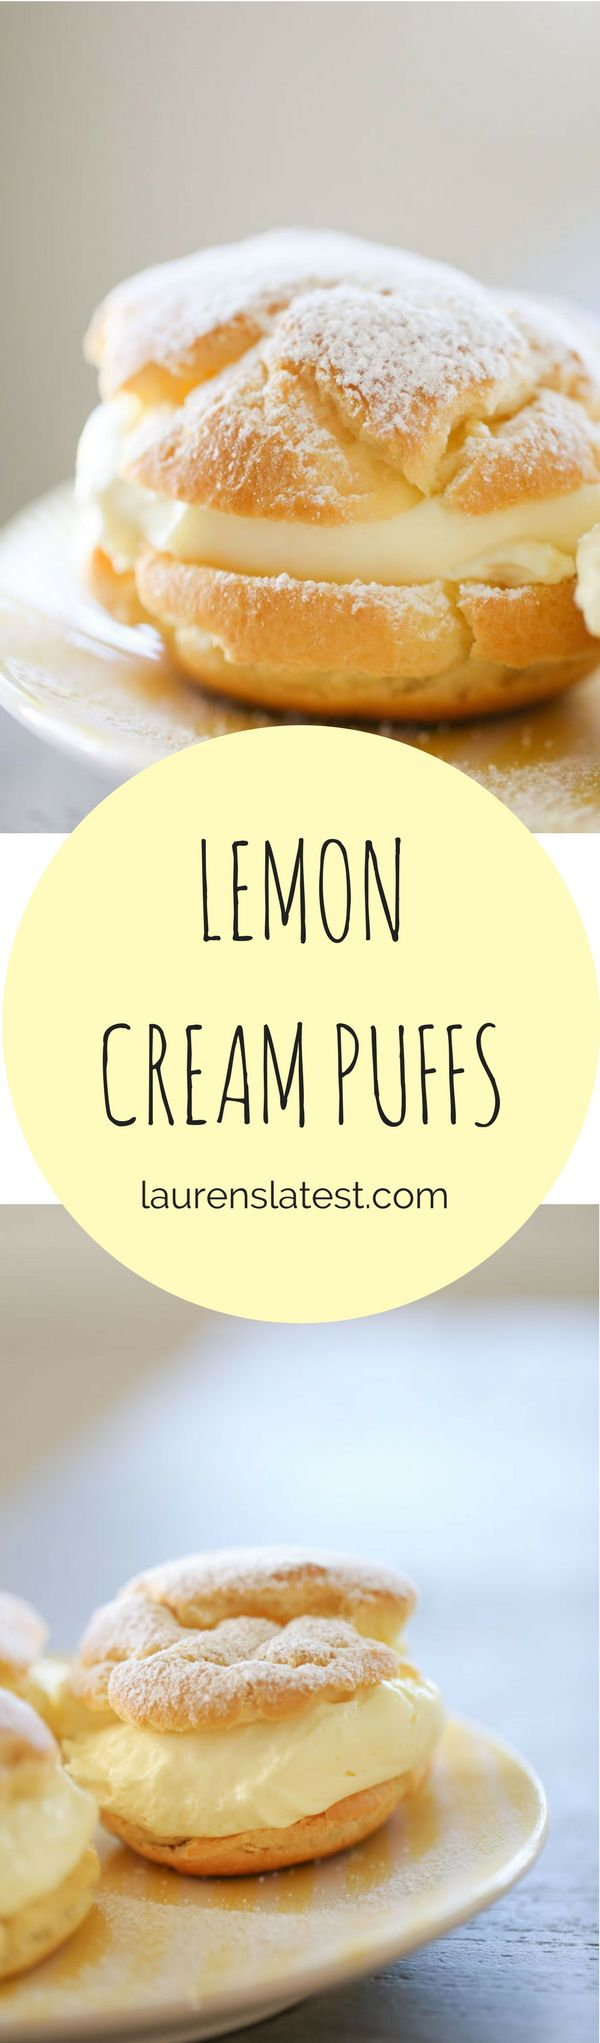 Lemon cream puffs are the zingy, summery and creamy version of the original! Filled with an easy lemon cream, these huge cream puffs are sure to make you fall in love with dessert all over again.